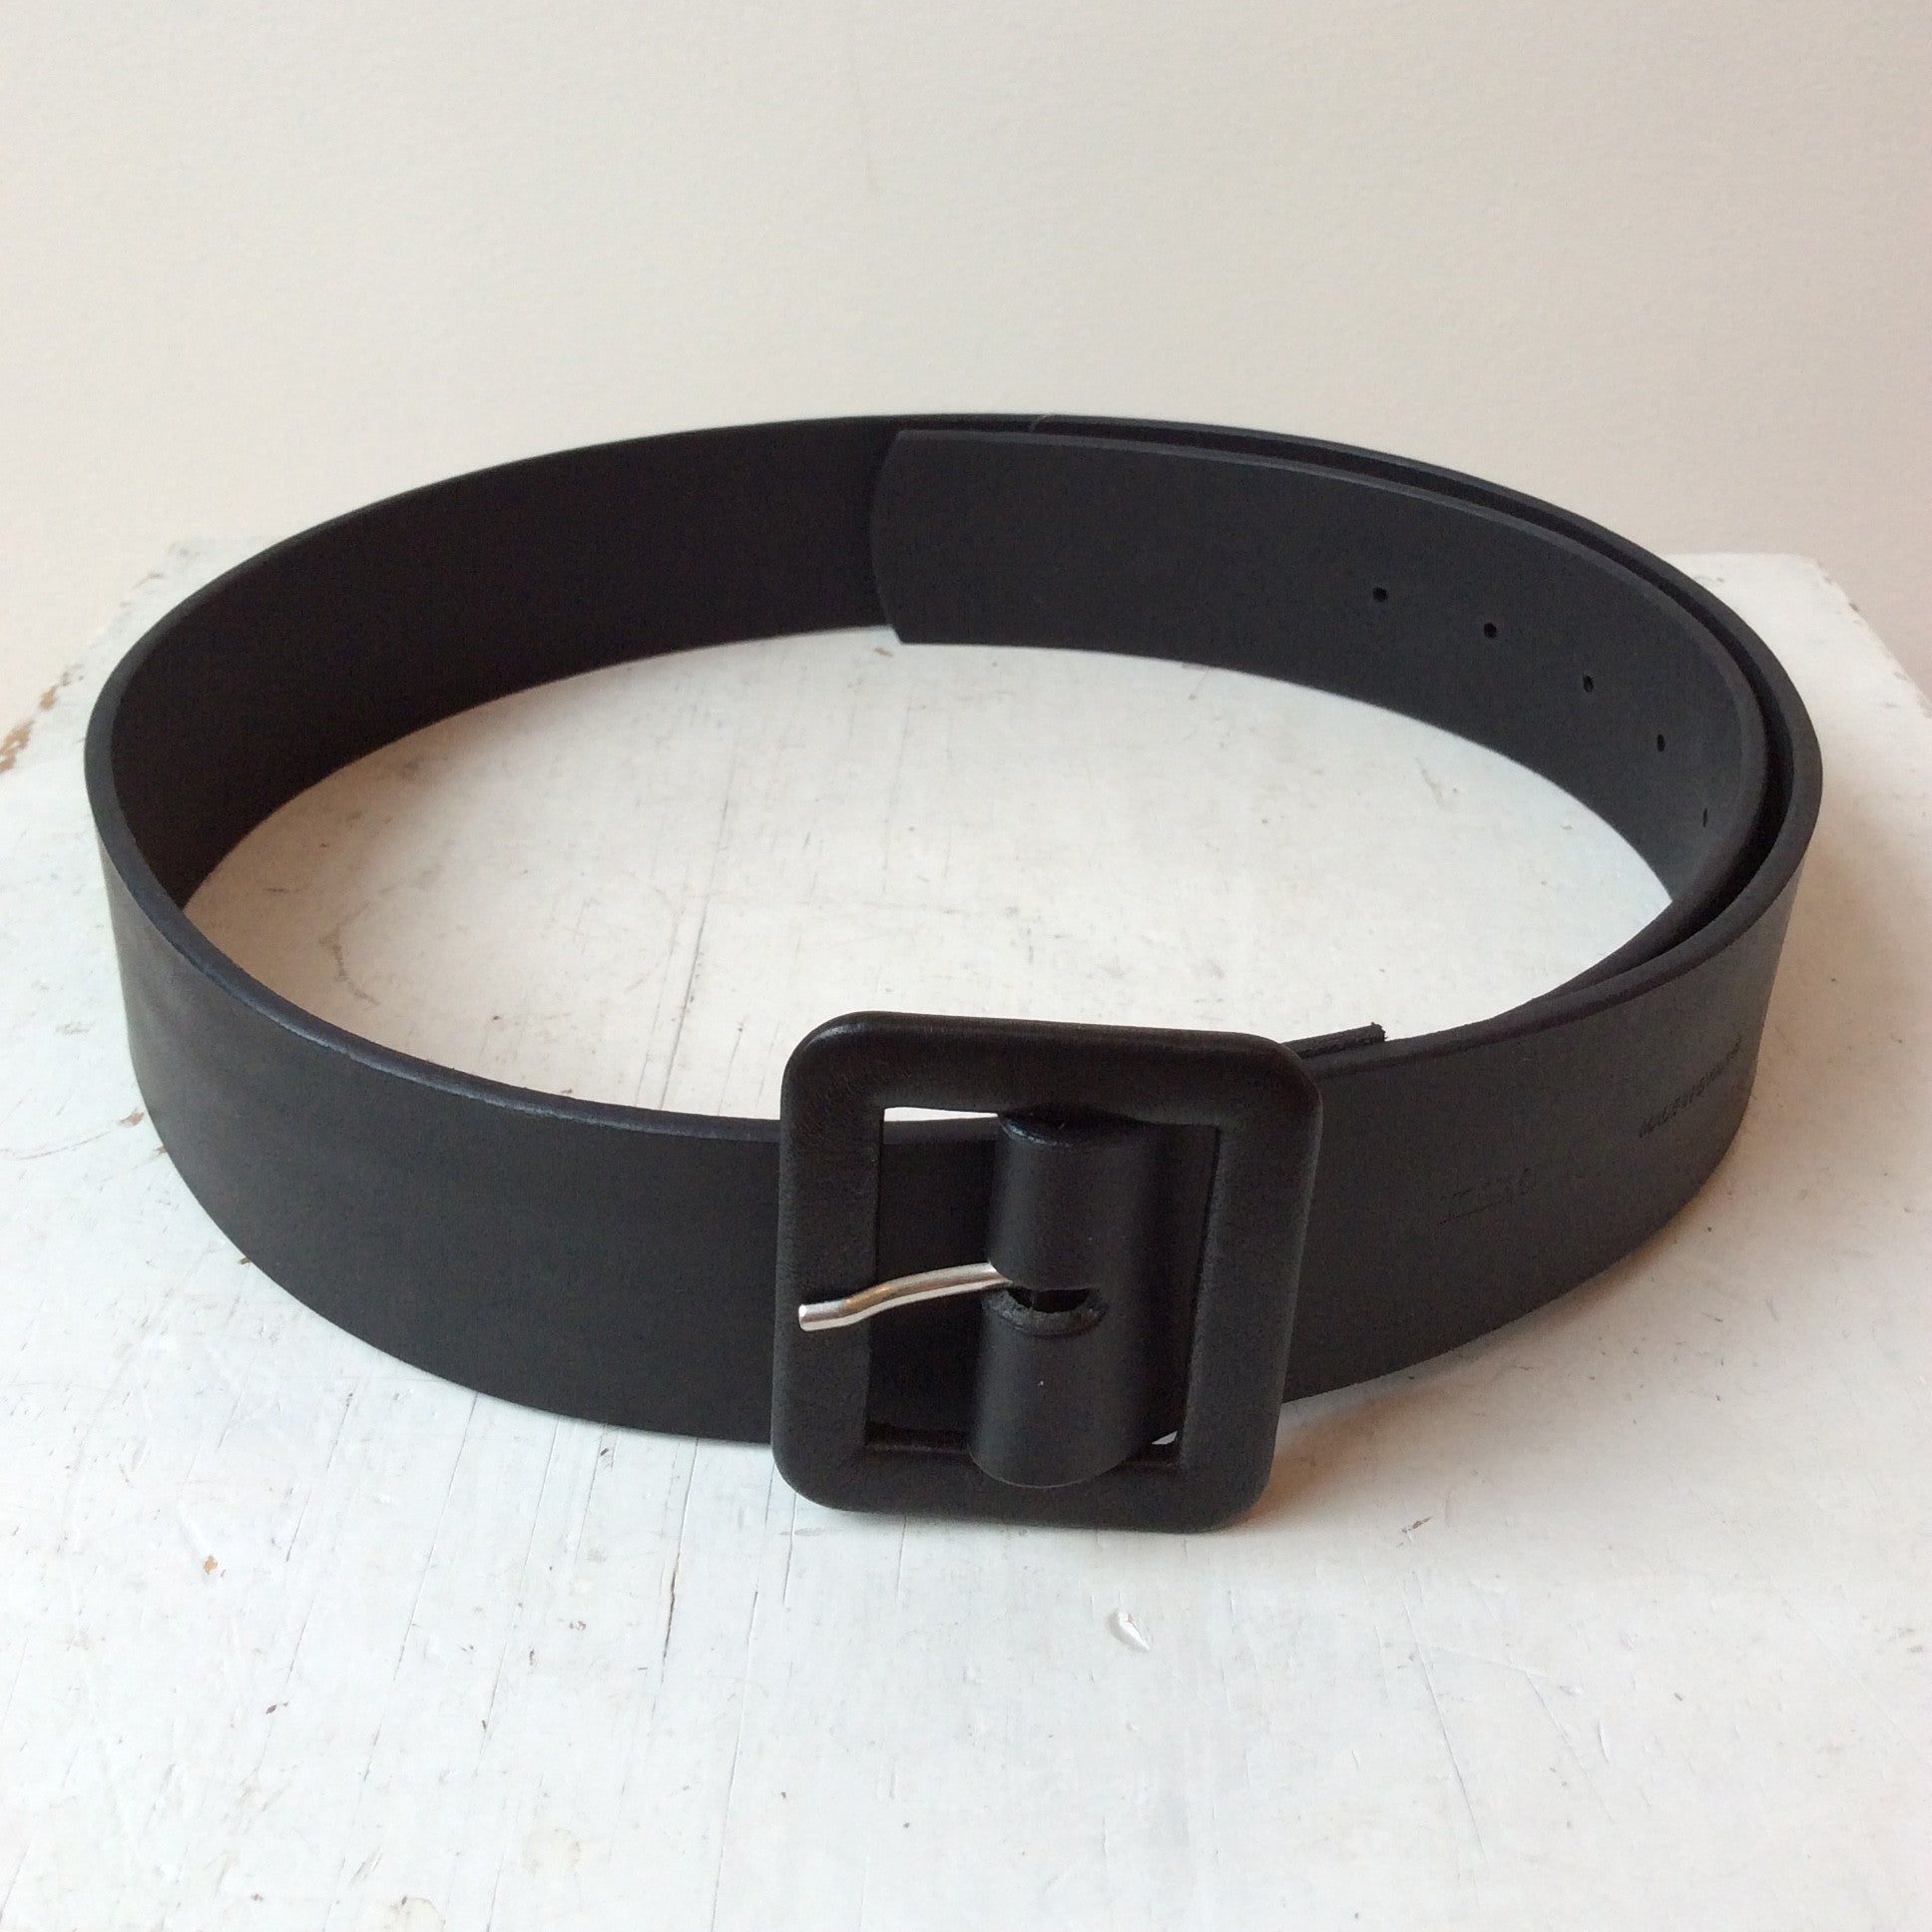 KIS,C WIDE BROWN LEATHER BELT